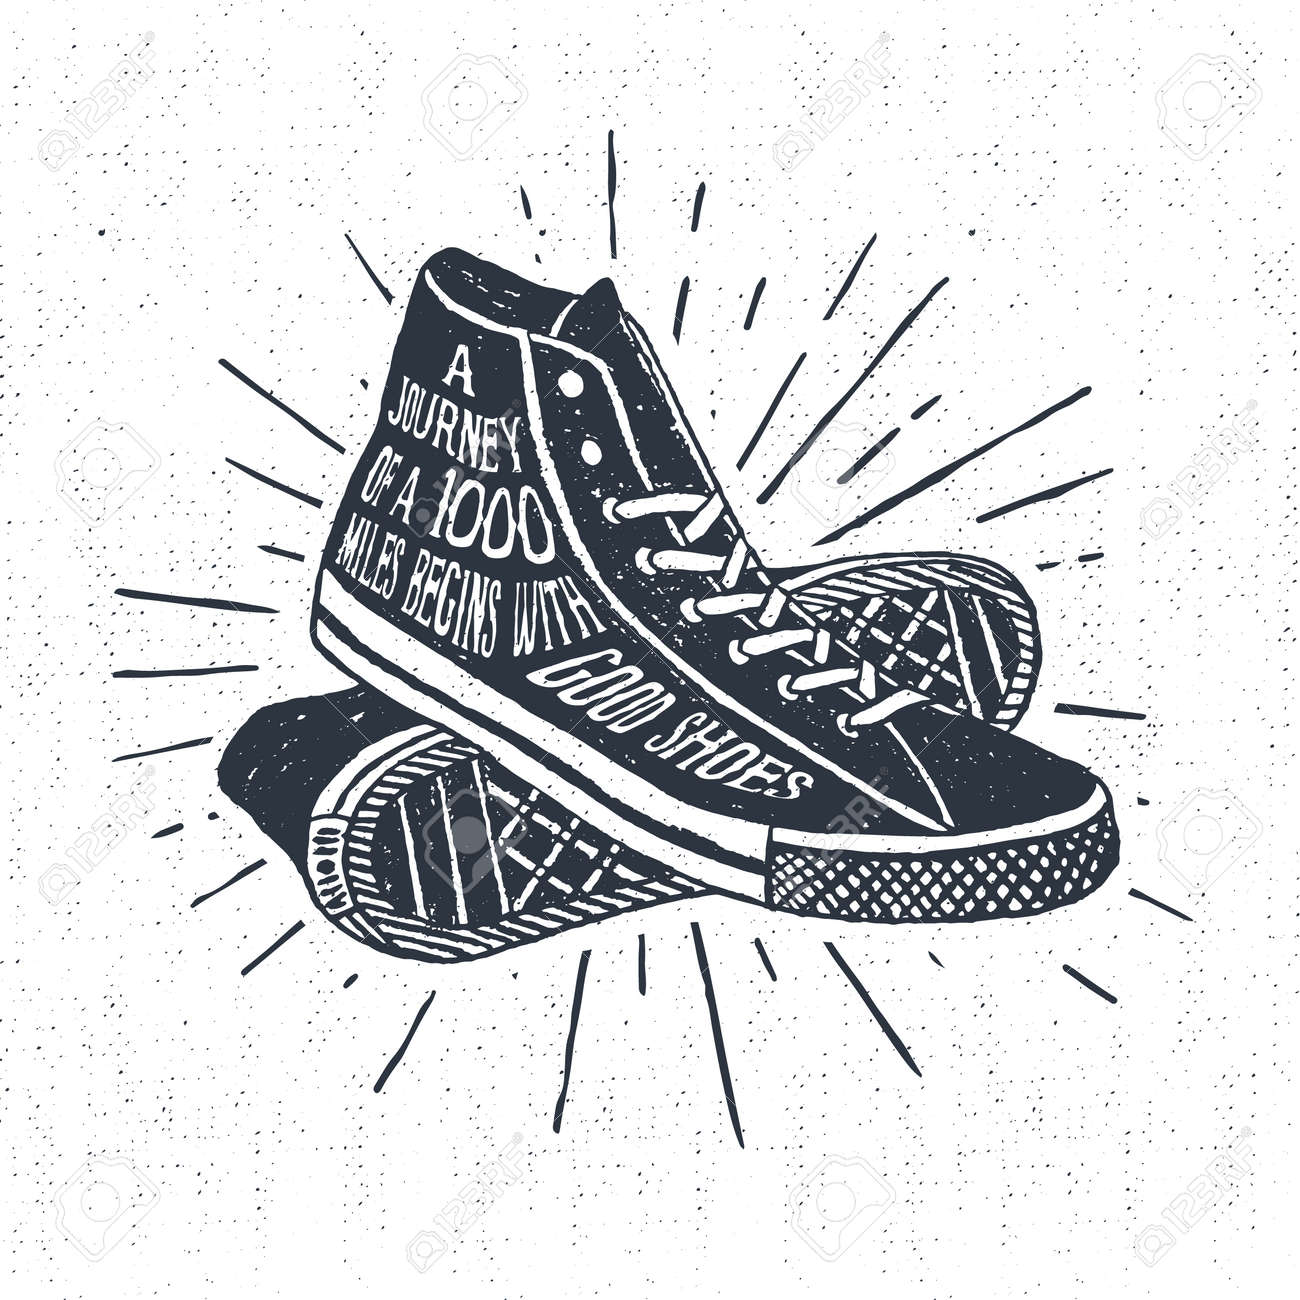 Hand drawn textured vintage label, retro badge with sneakers vector illustration and inspirational lettering. - 55094492